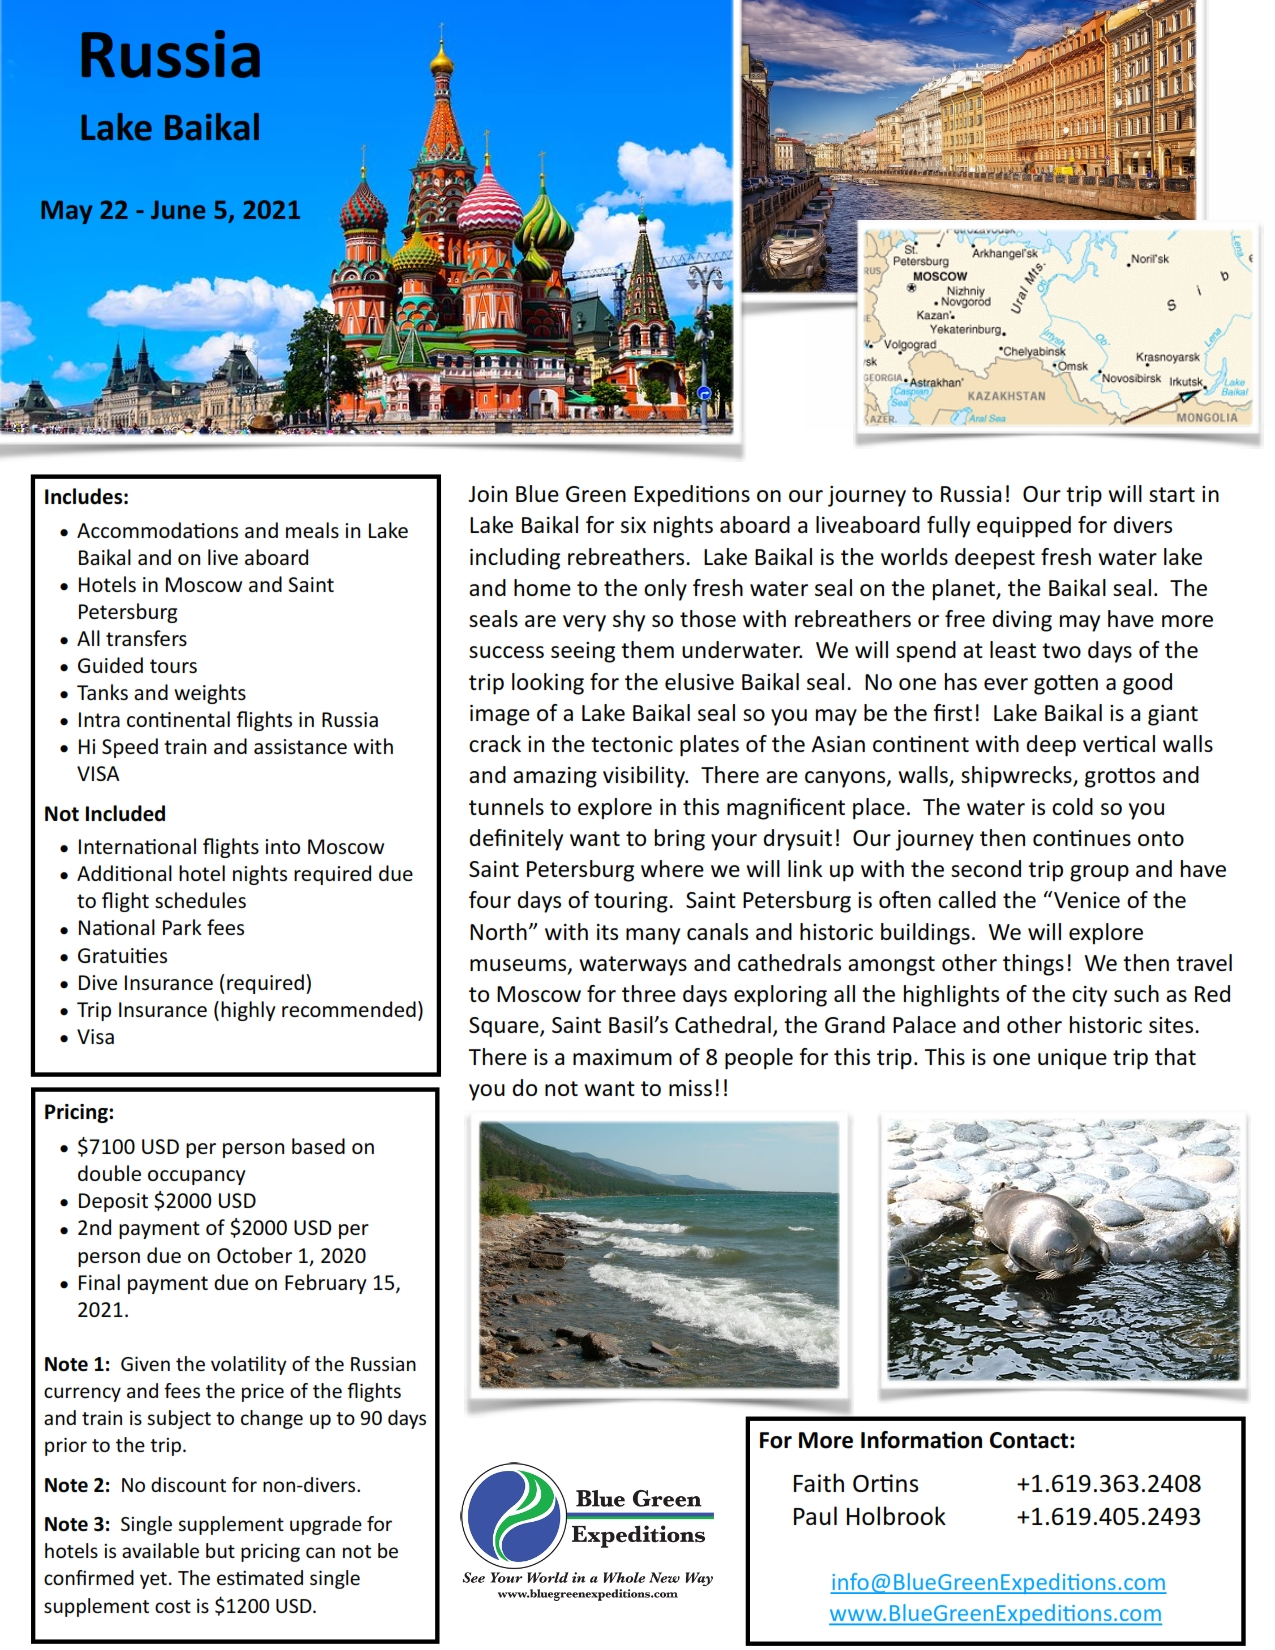 Trip: Lake Baikal May 22 - June 5, 2021